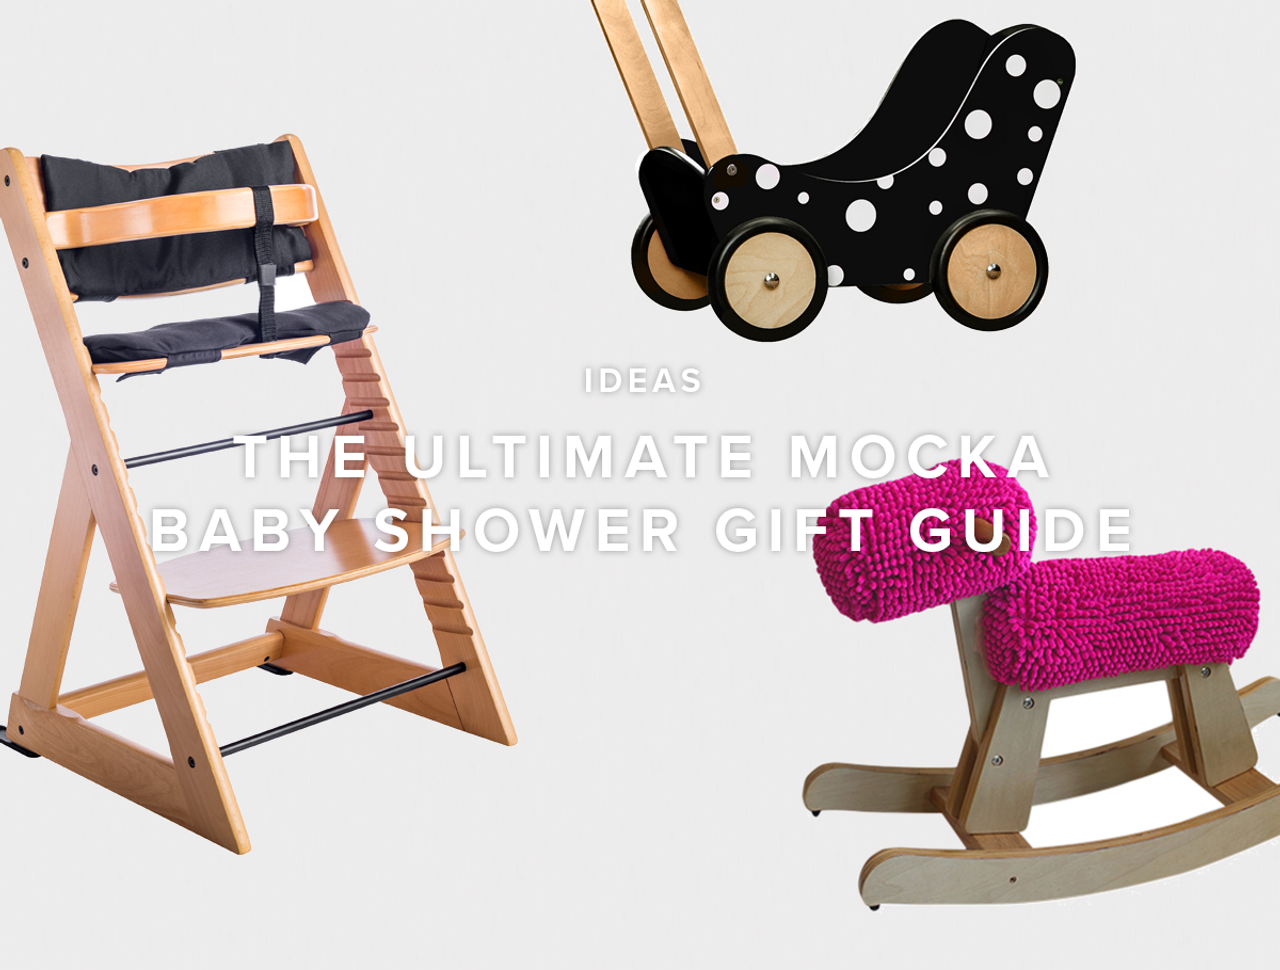 The Ultimate Mocka Baby Shower Gift Guide